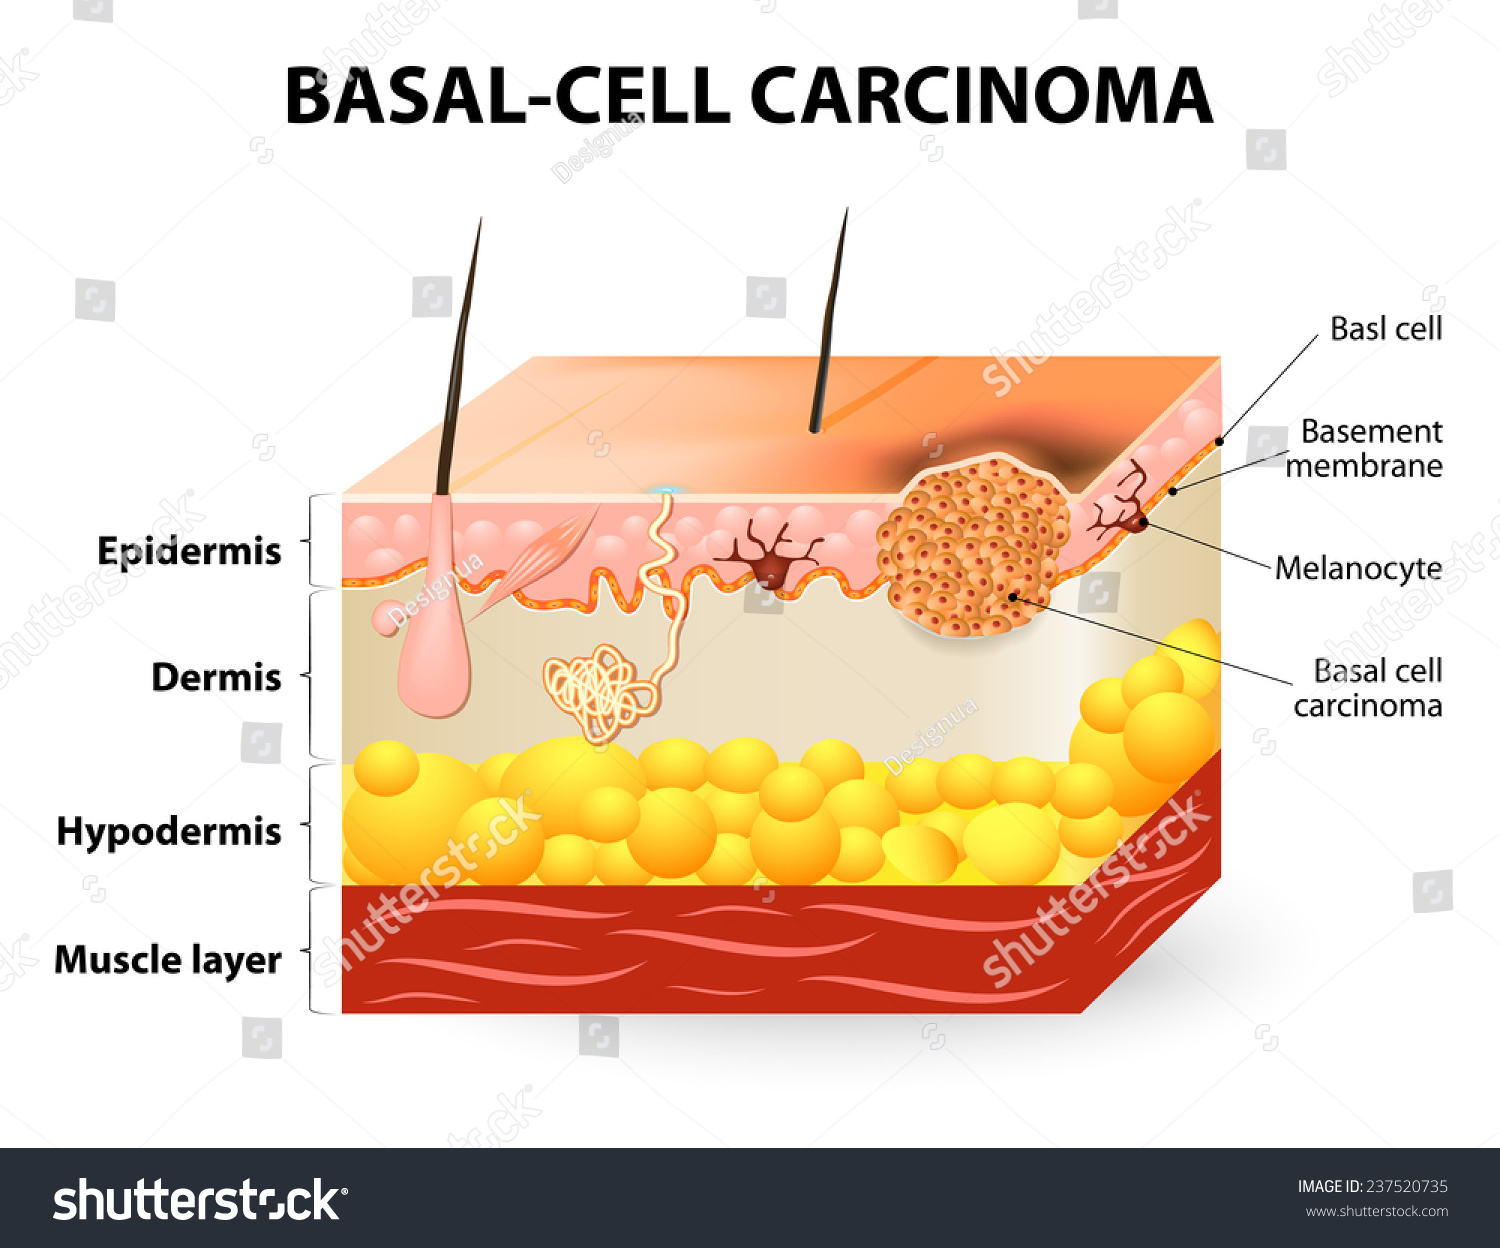 Skin Cancer Basalcell Carcinoma Basal Cell Stock Vector